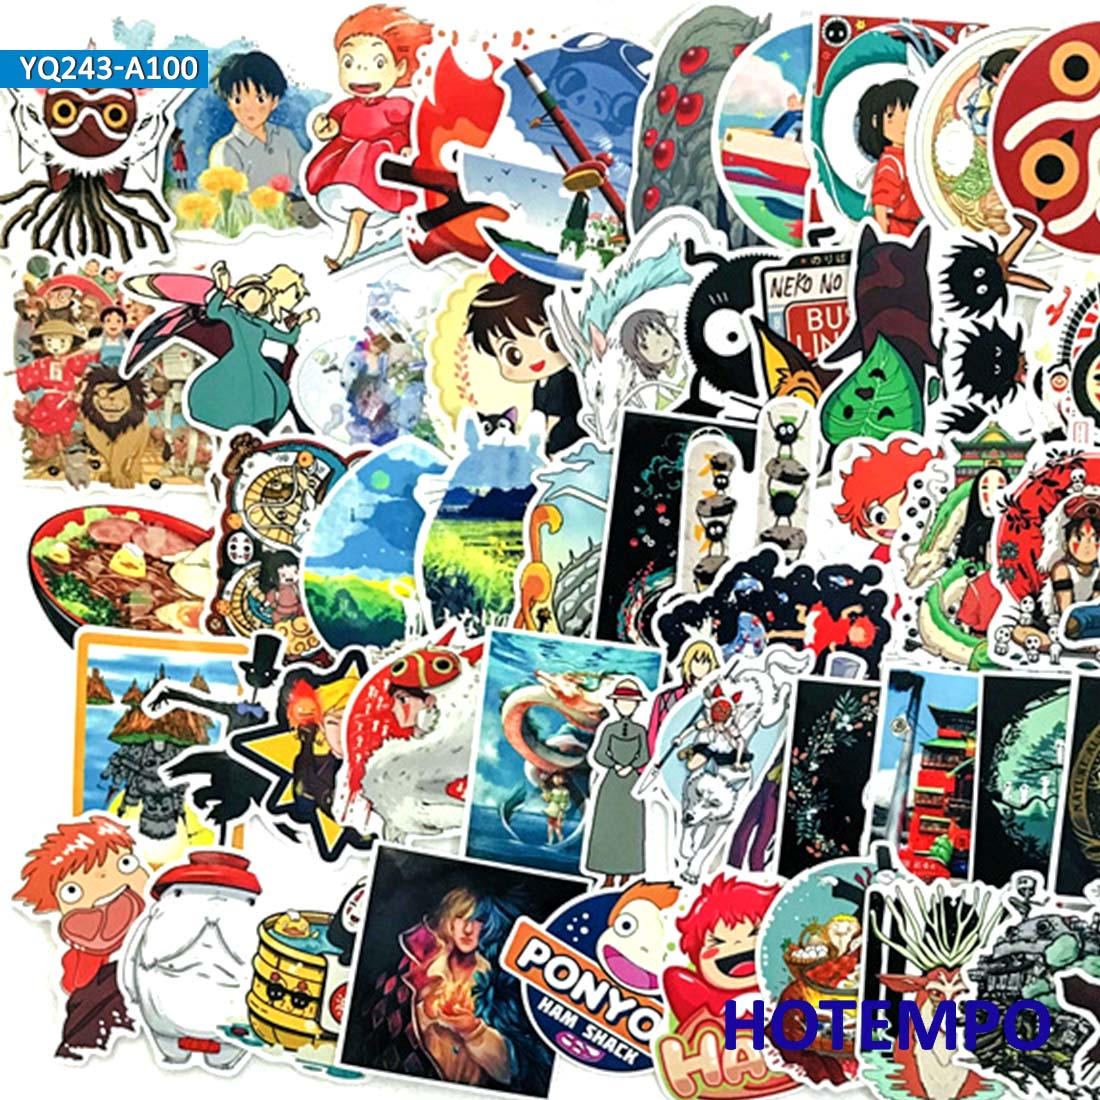 100pcs Manga Miyazaki Hayao classic Anime Stickers for Mobile Phone Laptop Luggage Suitcase Guitar Skateboard Decal Stickers in Stickers from Toys Hobbies